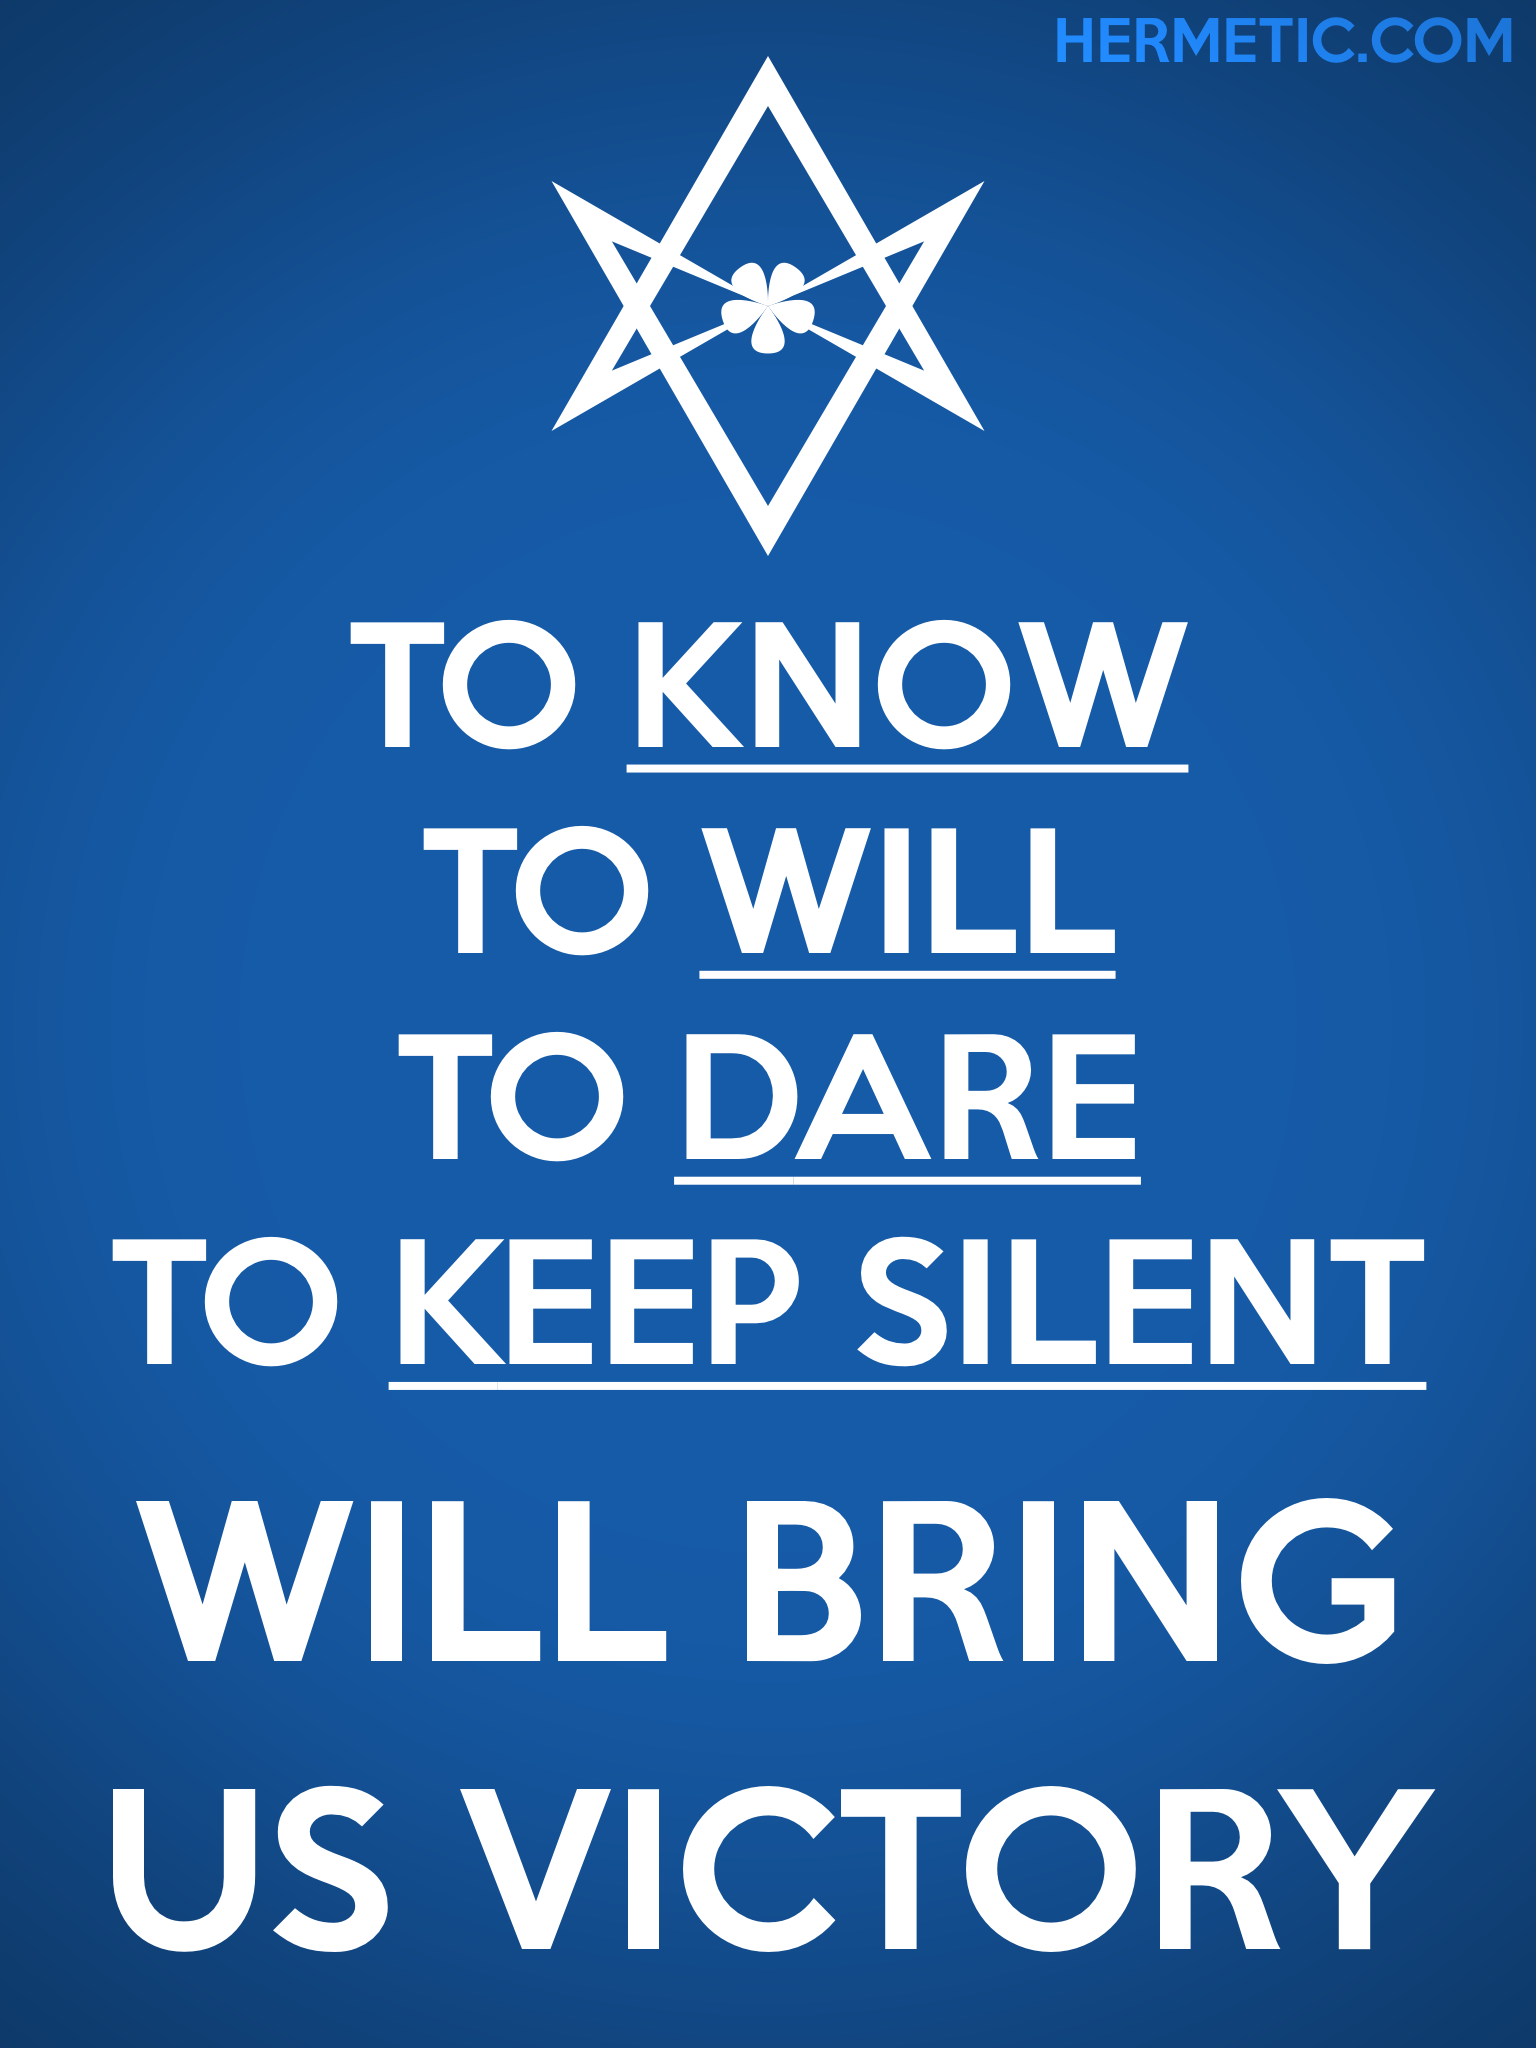 Unicursal KNOW WHILL DARE KEEP SILENT Propaganda Poster from the Hermetic Library Office of the Ministry of Information